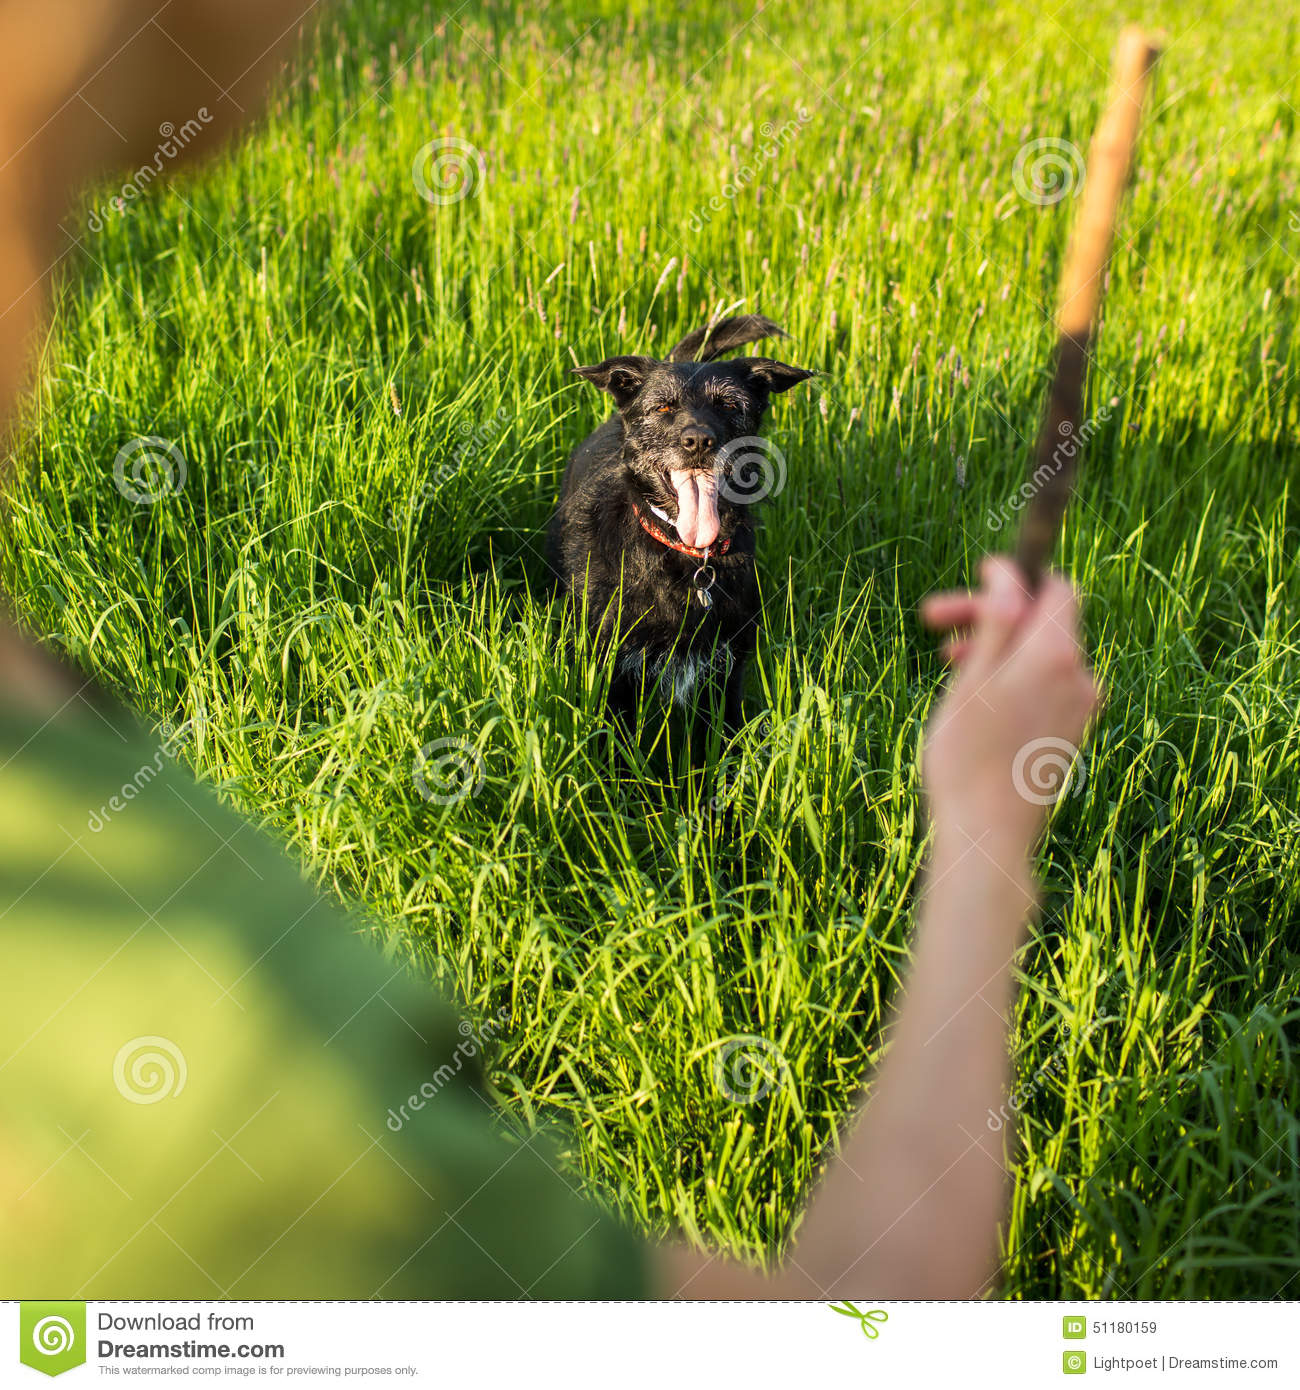 Walking the dog - throwing the stick to fetch